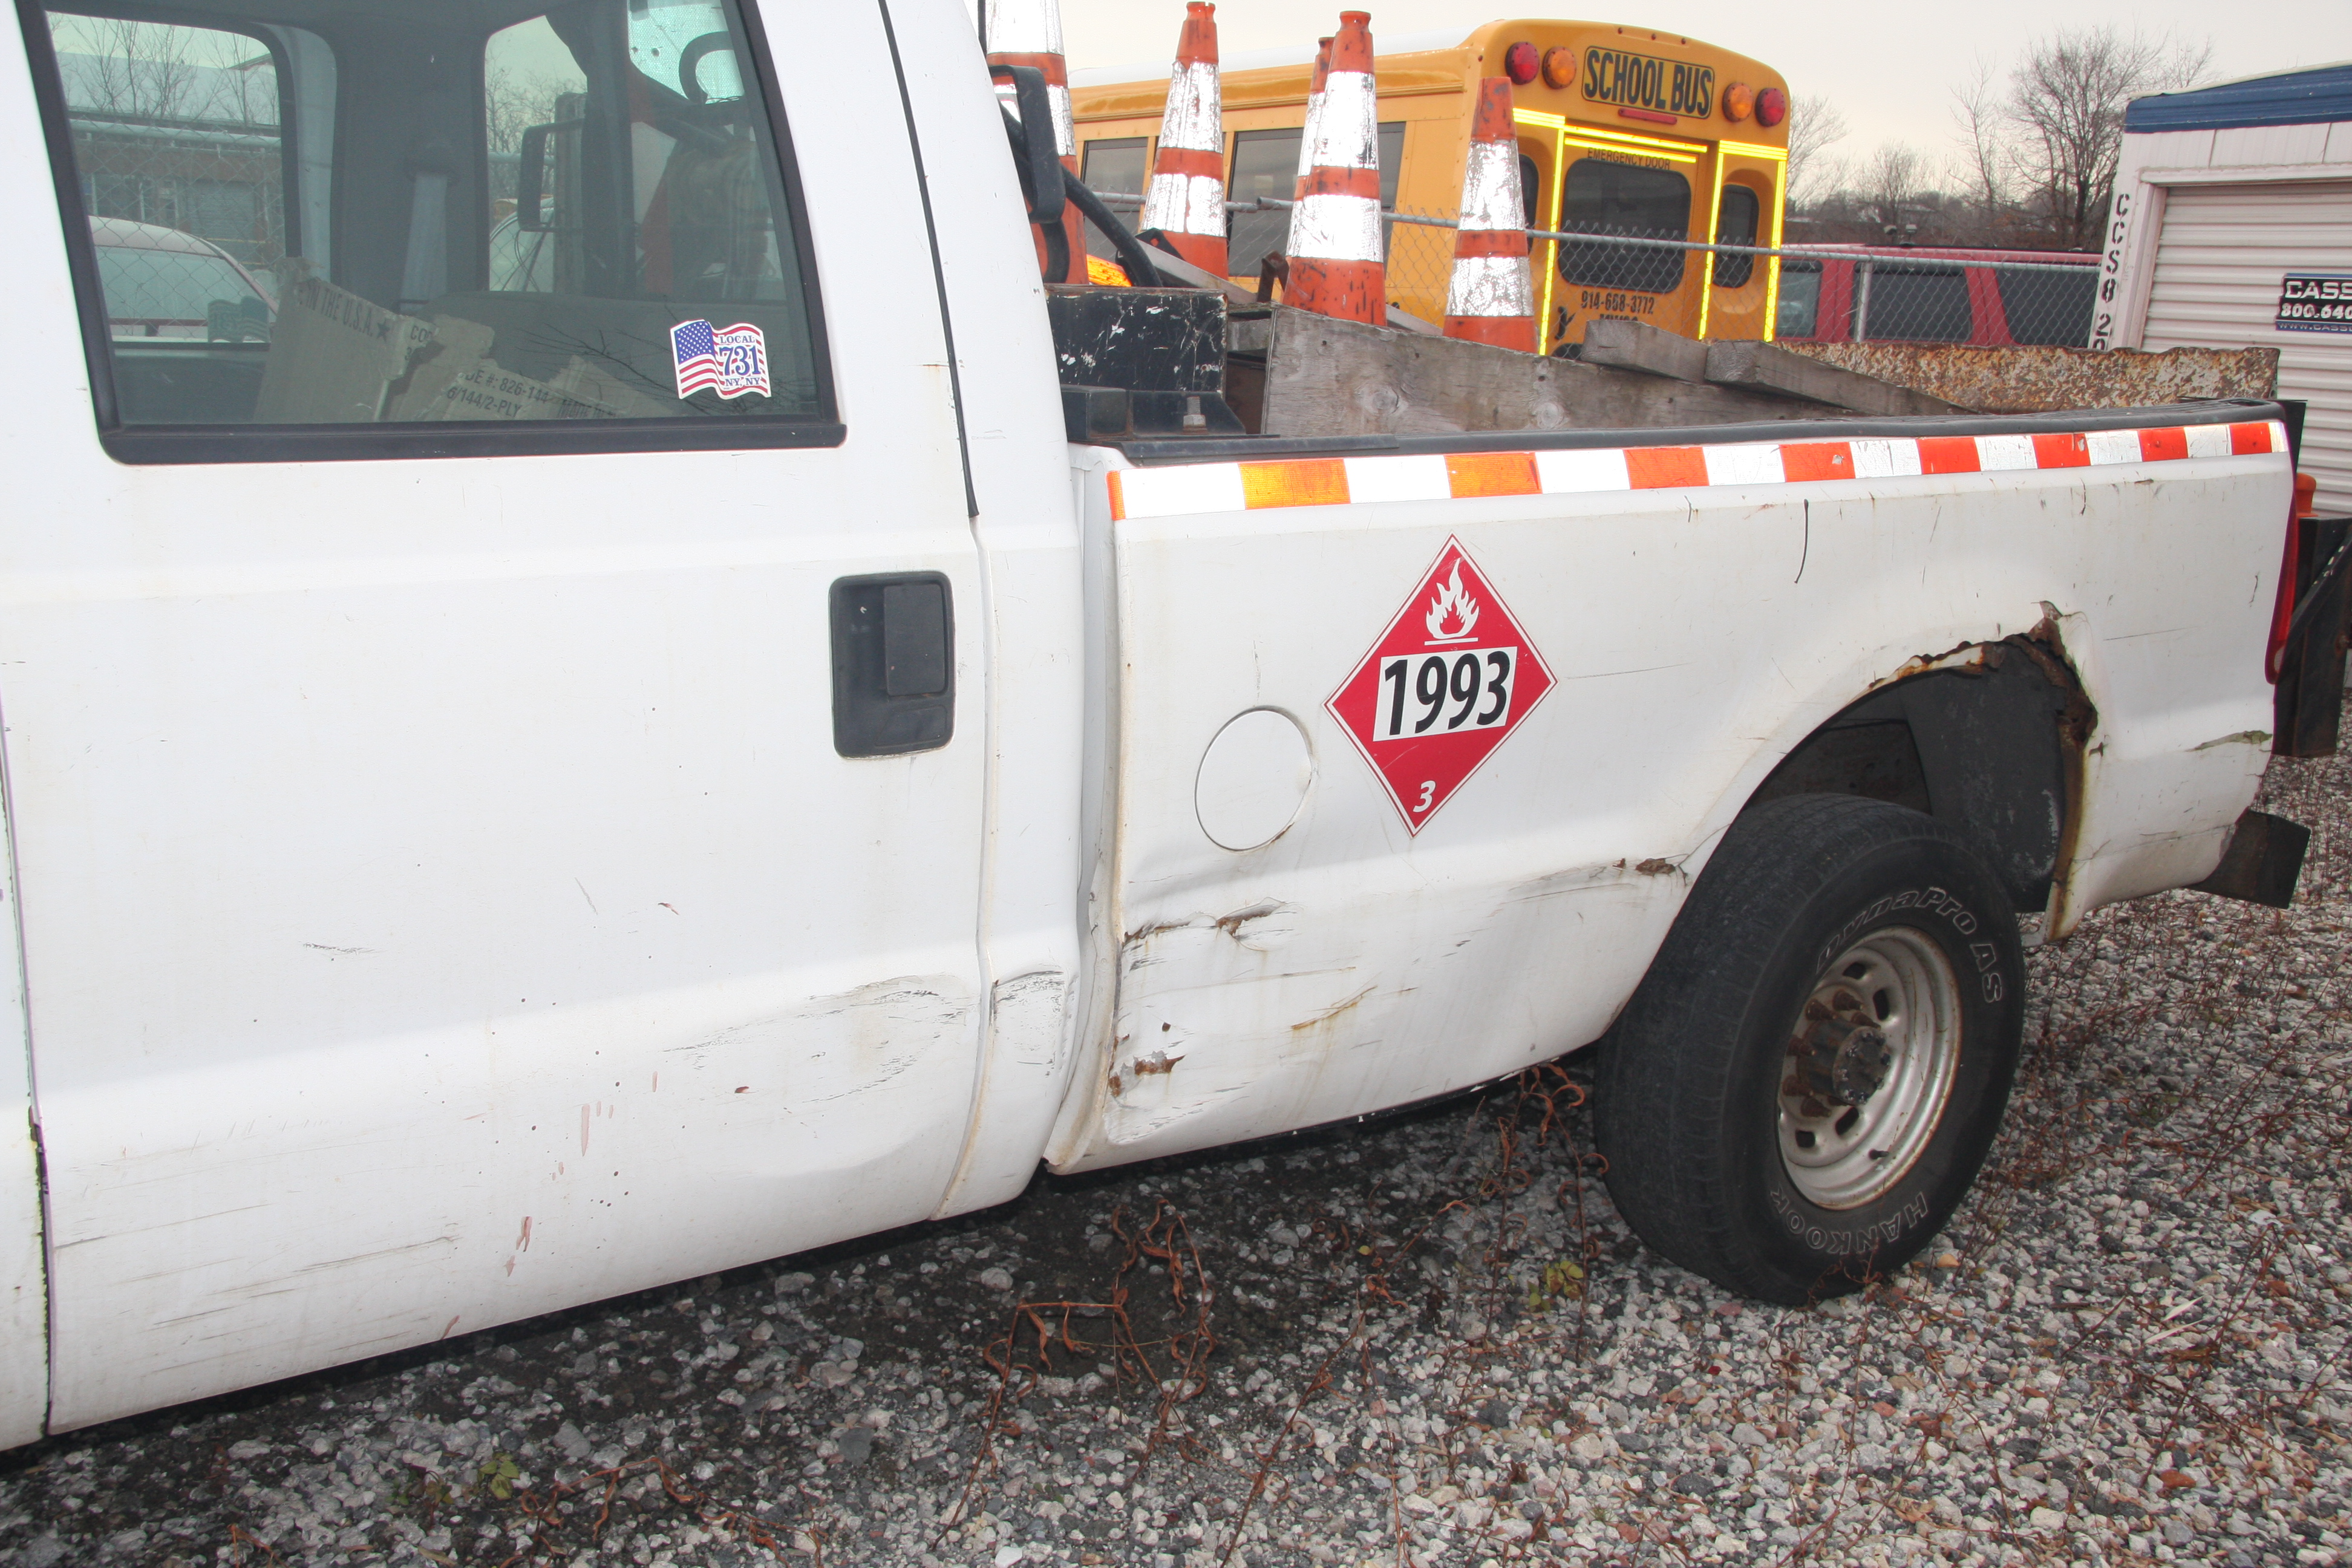 Lot 28 - 2004 FORD F350 XL 4-DOOR PICKUP TRUCK, 2-WHEEL DRIVE, AUTOMATIC TRANSMISSION, V8 GAS ENGINE, 8' BED,